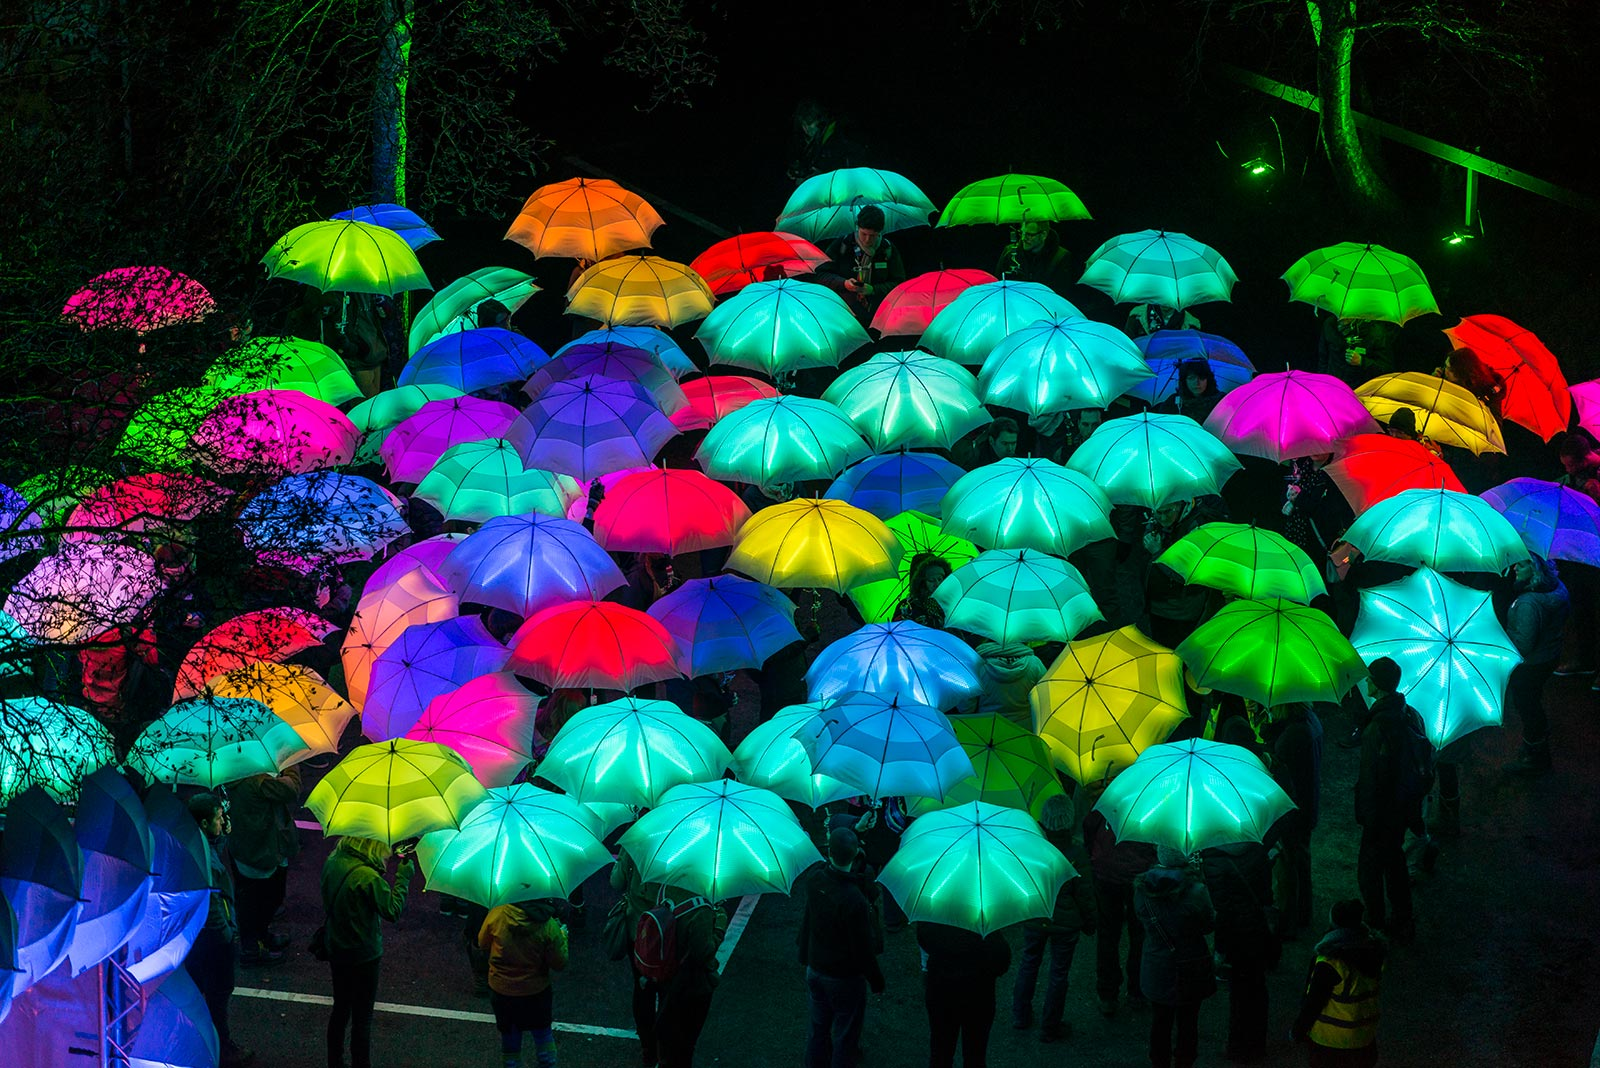 Cirque Bijou - A group of brightly coloured LED Umbrellas